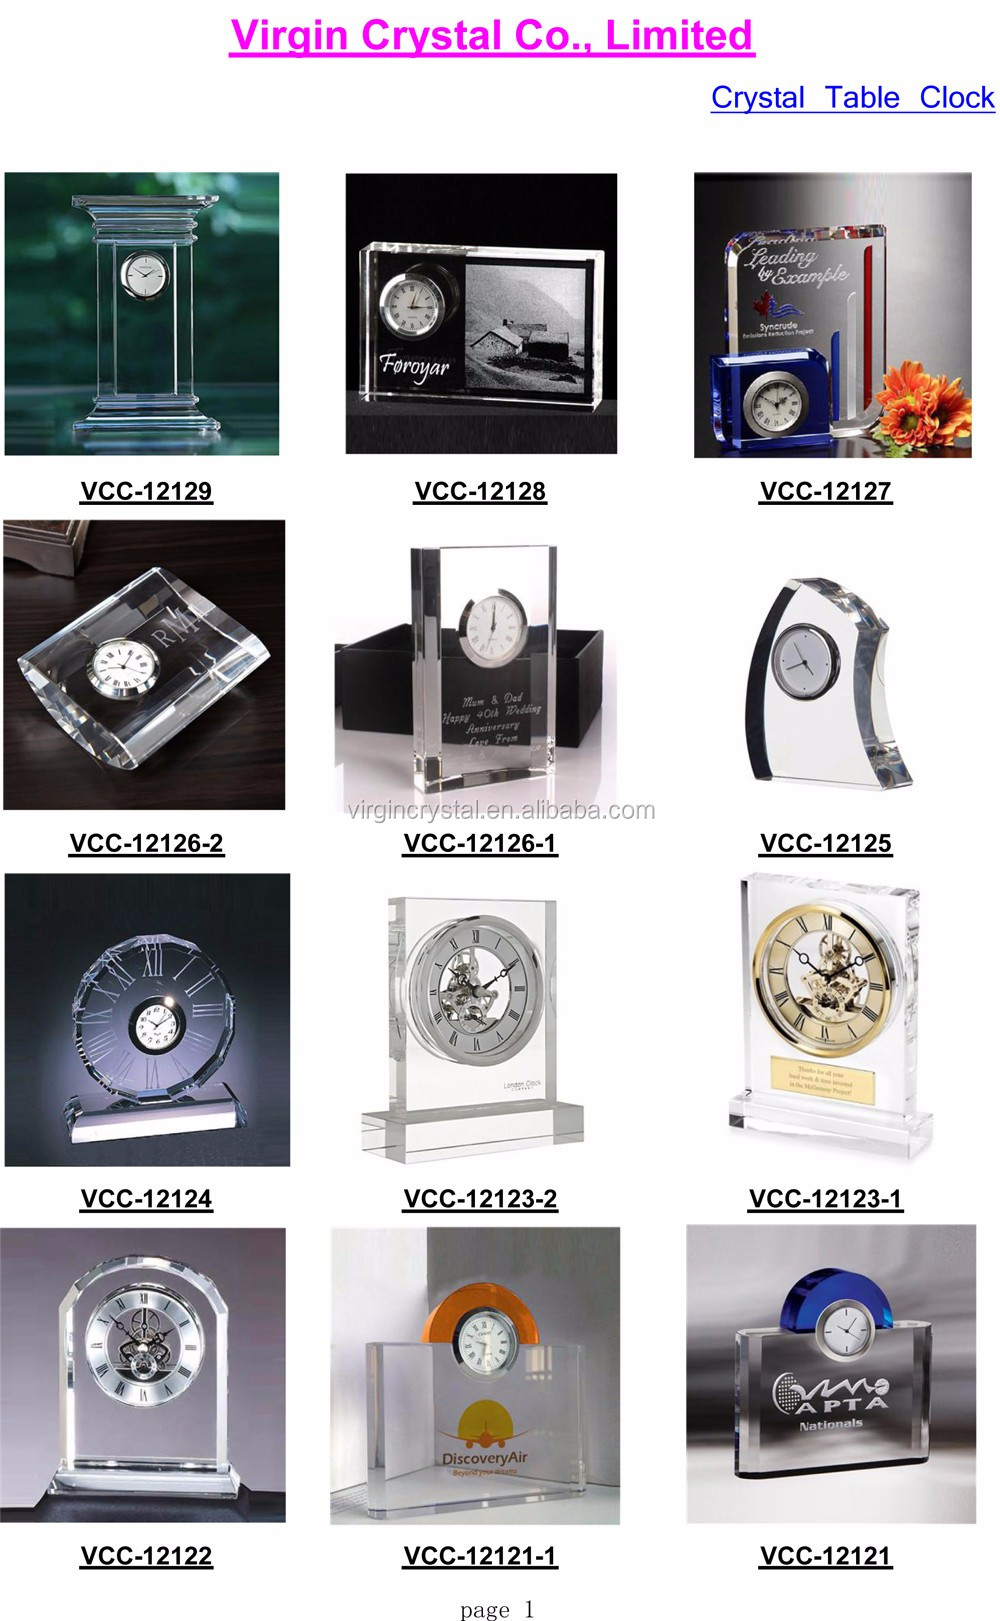 Handmade crystal glass diamond shape trophy stand clock for company gift